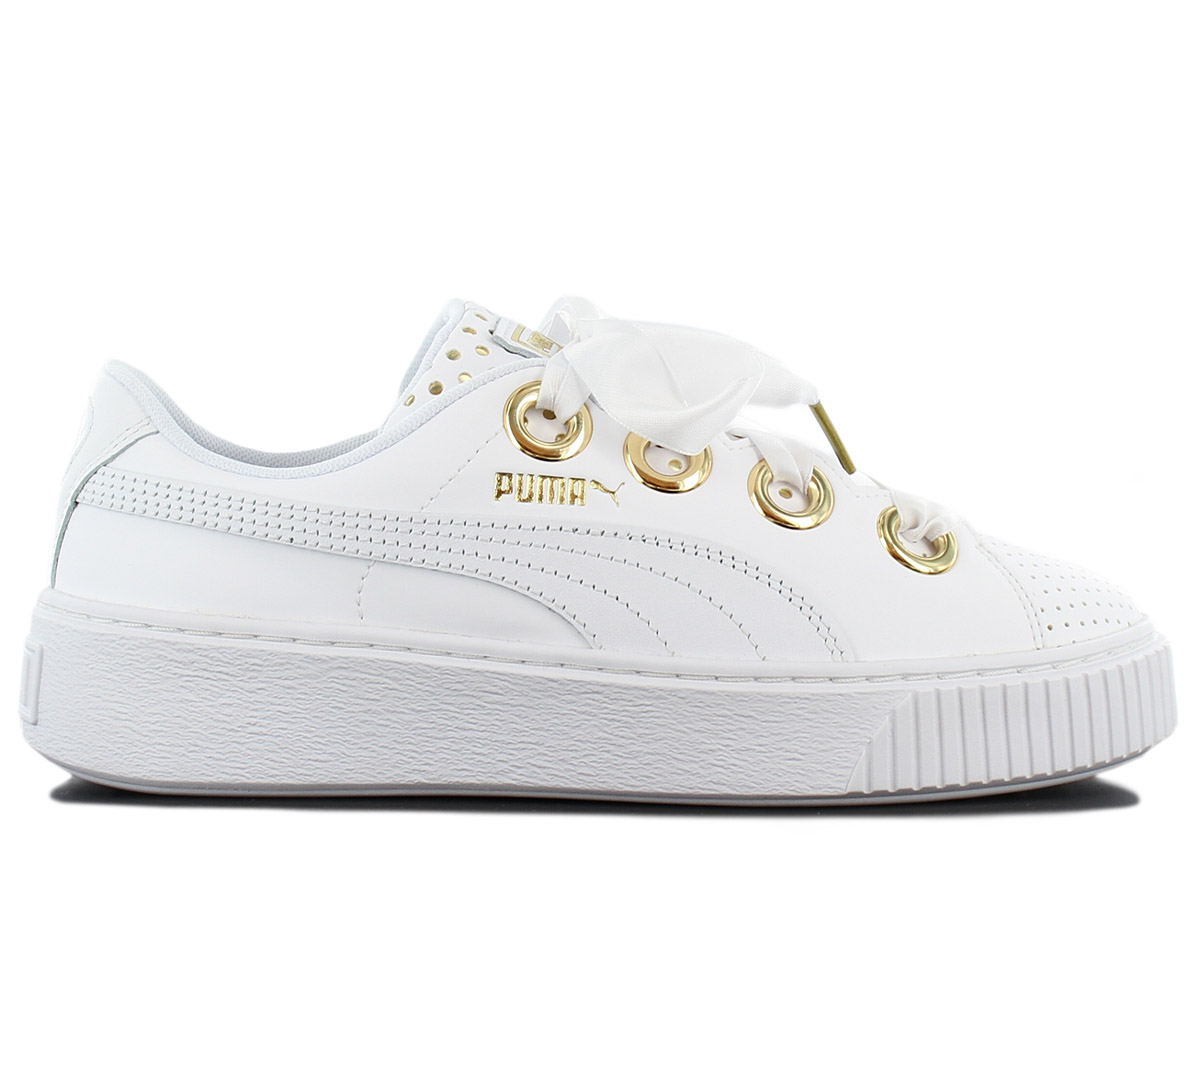 Details about Puma Platform KISS ATH Lux Sneaker Womens Shoes Leather White 366704 01 Sneakers show original title